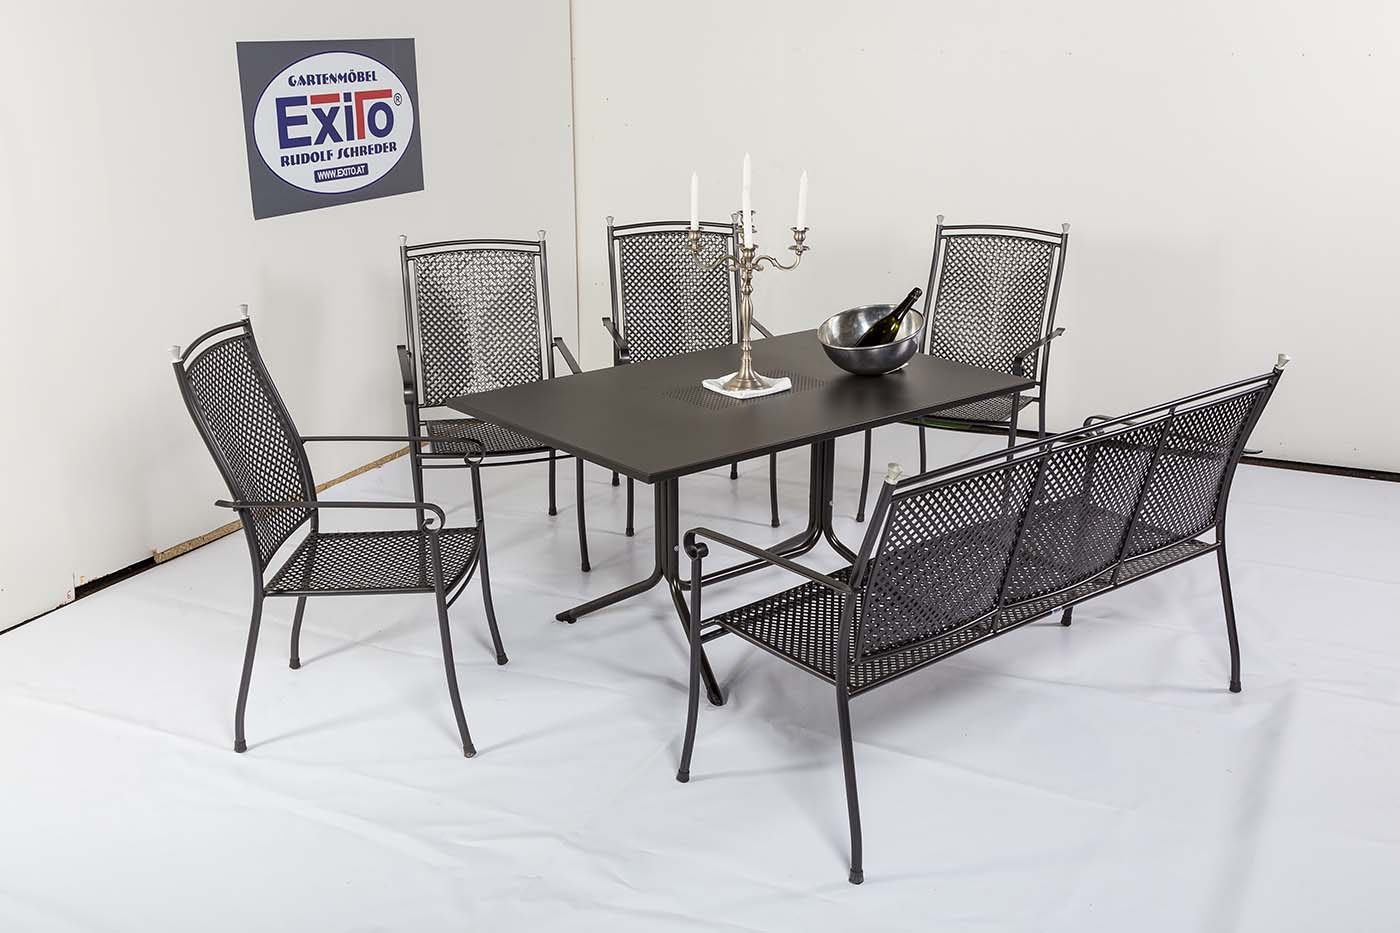 Privat Kunden Exito Outdoor Living